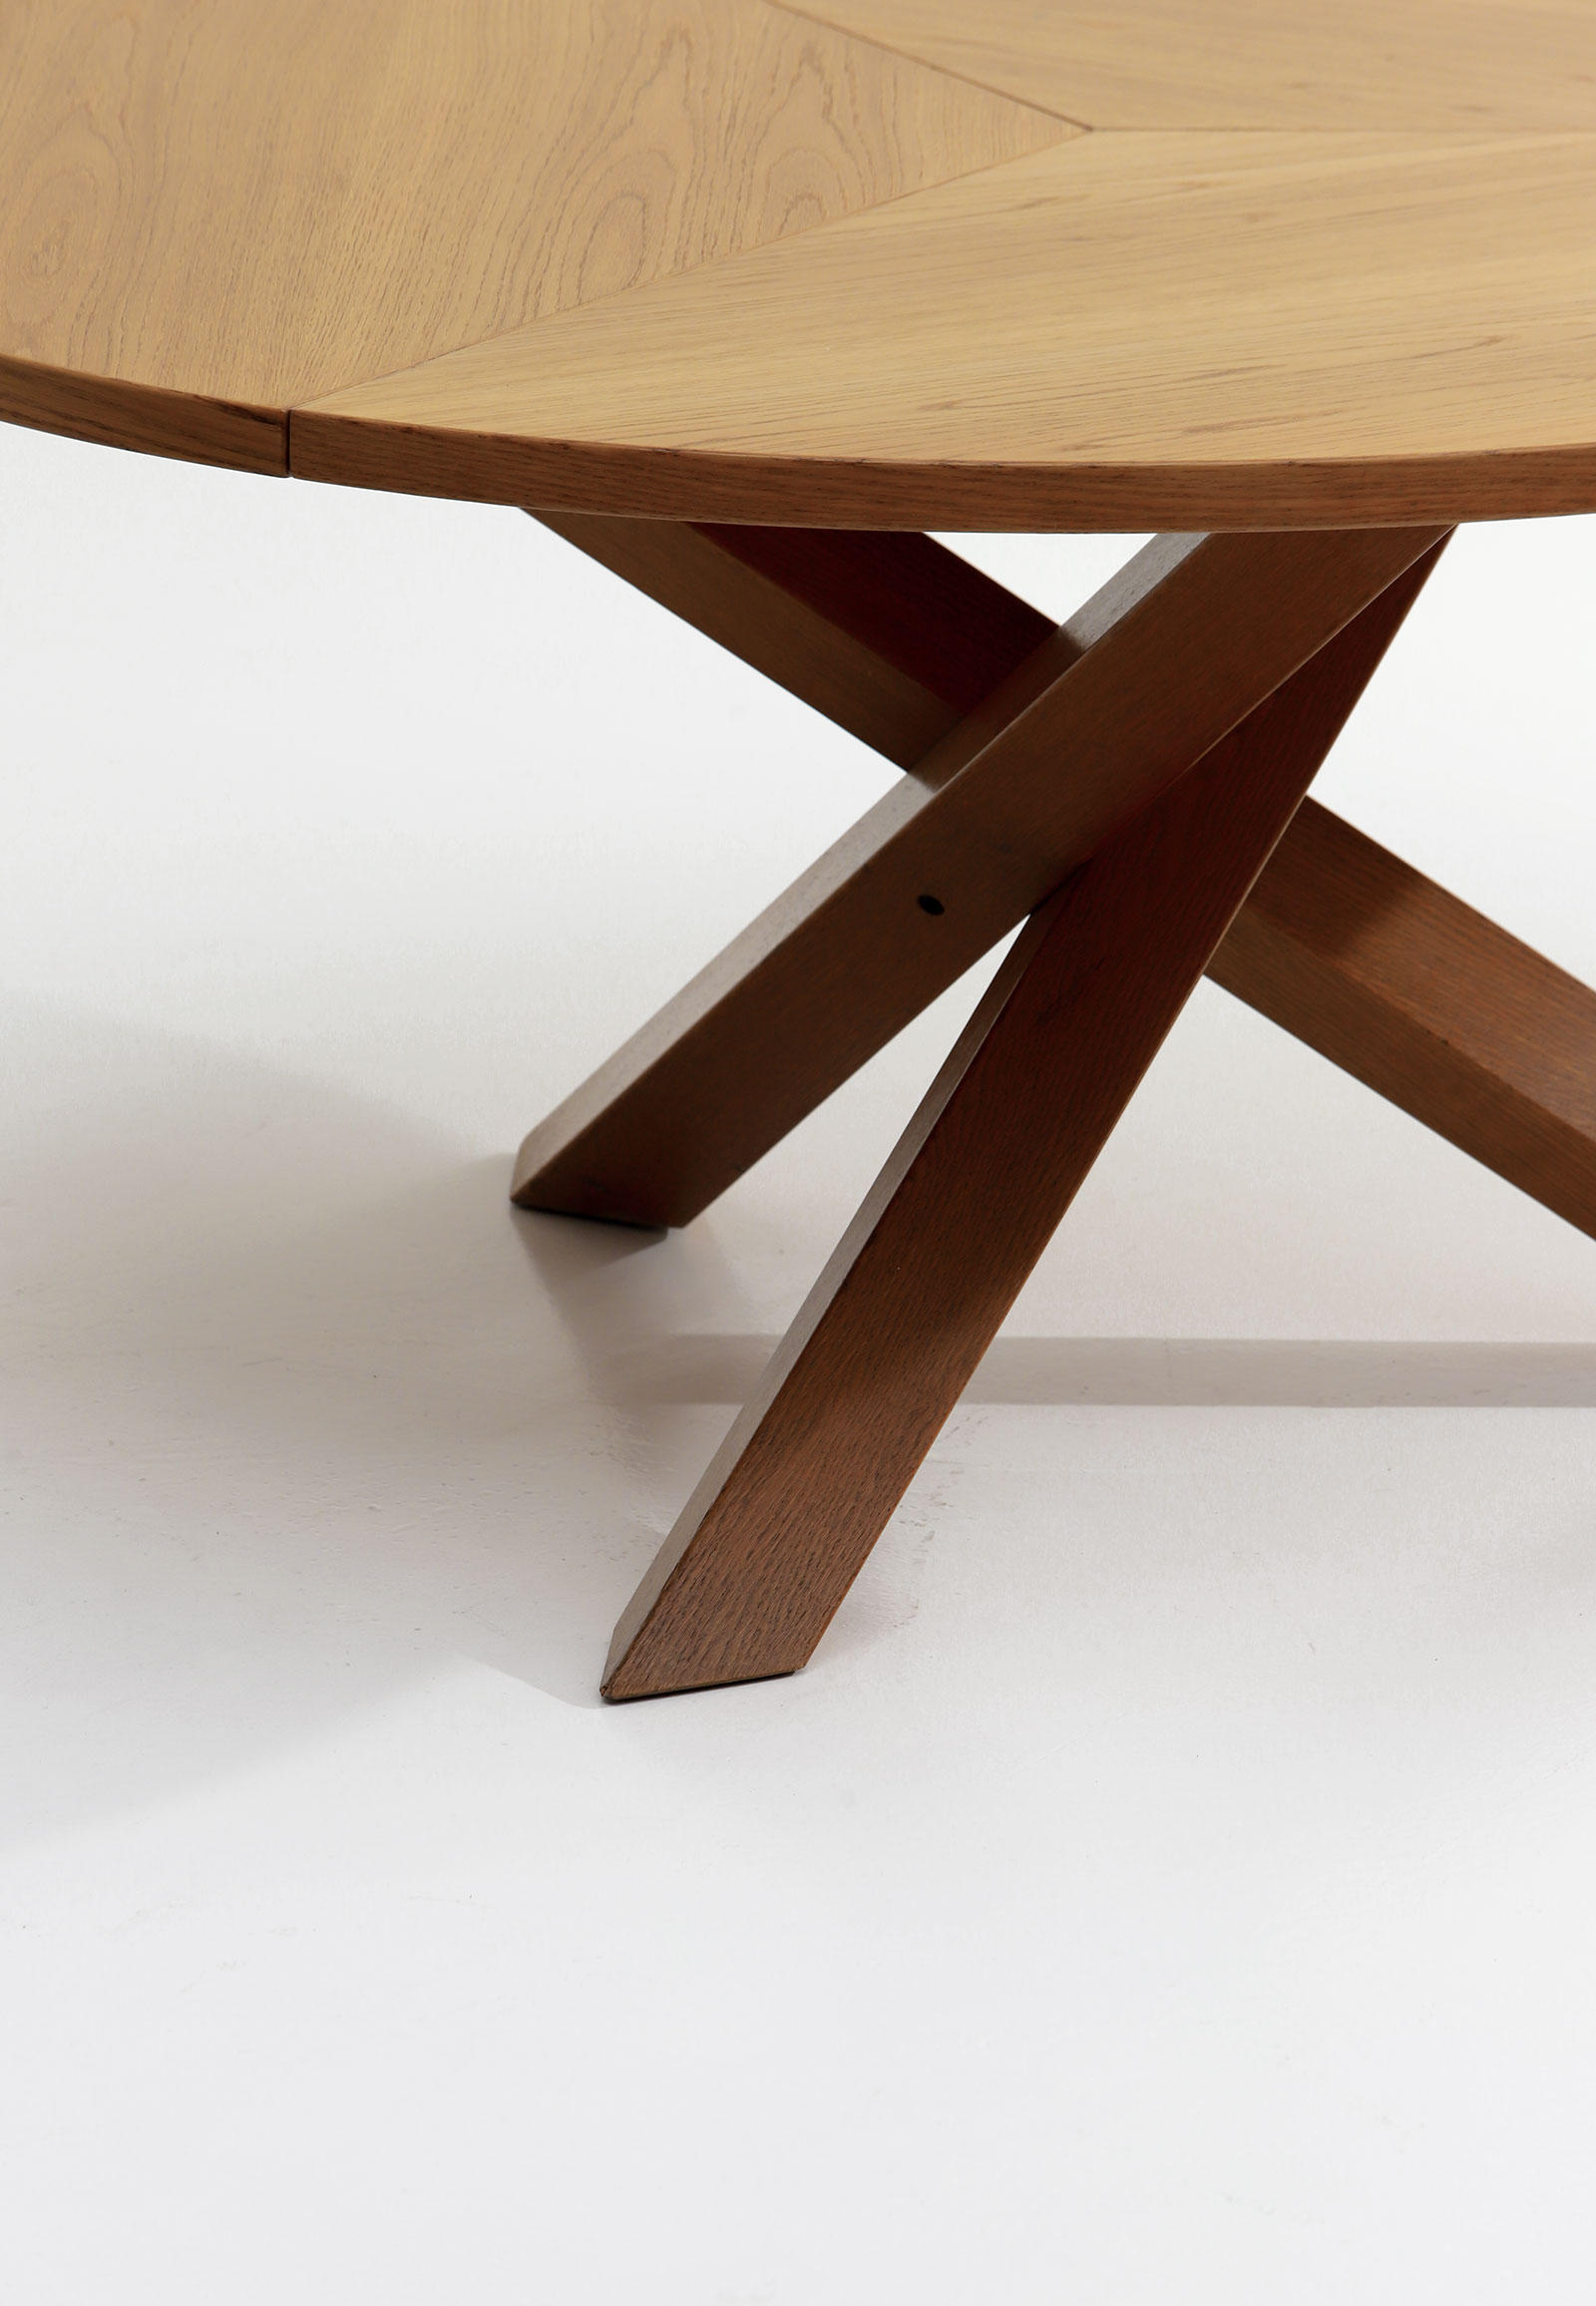 Gerard Geytenbeek Dining Table for AZS The Netherlandsimage 3